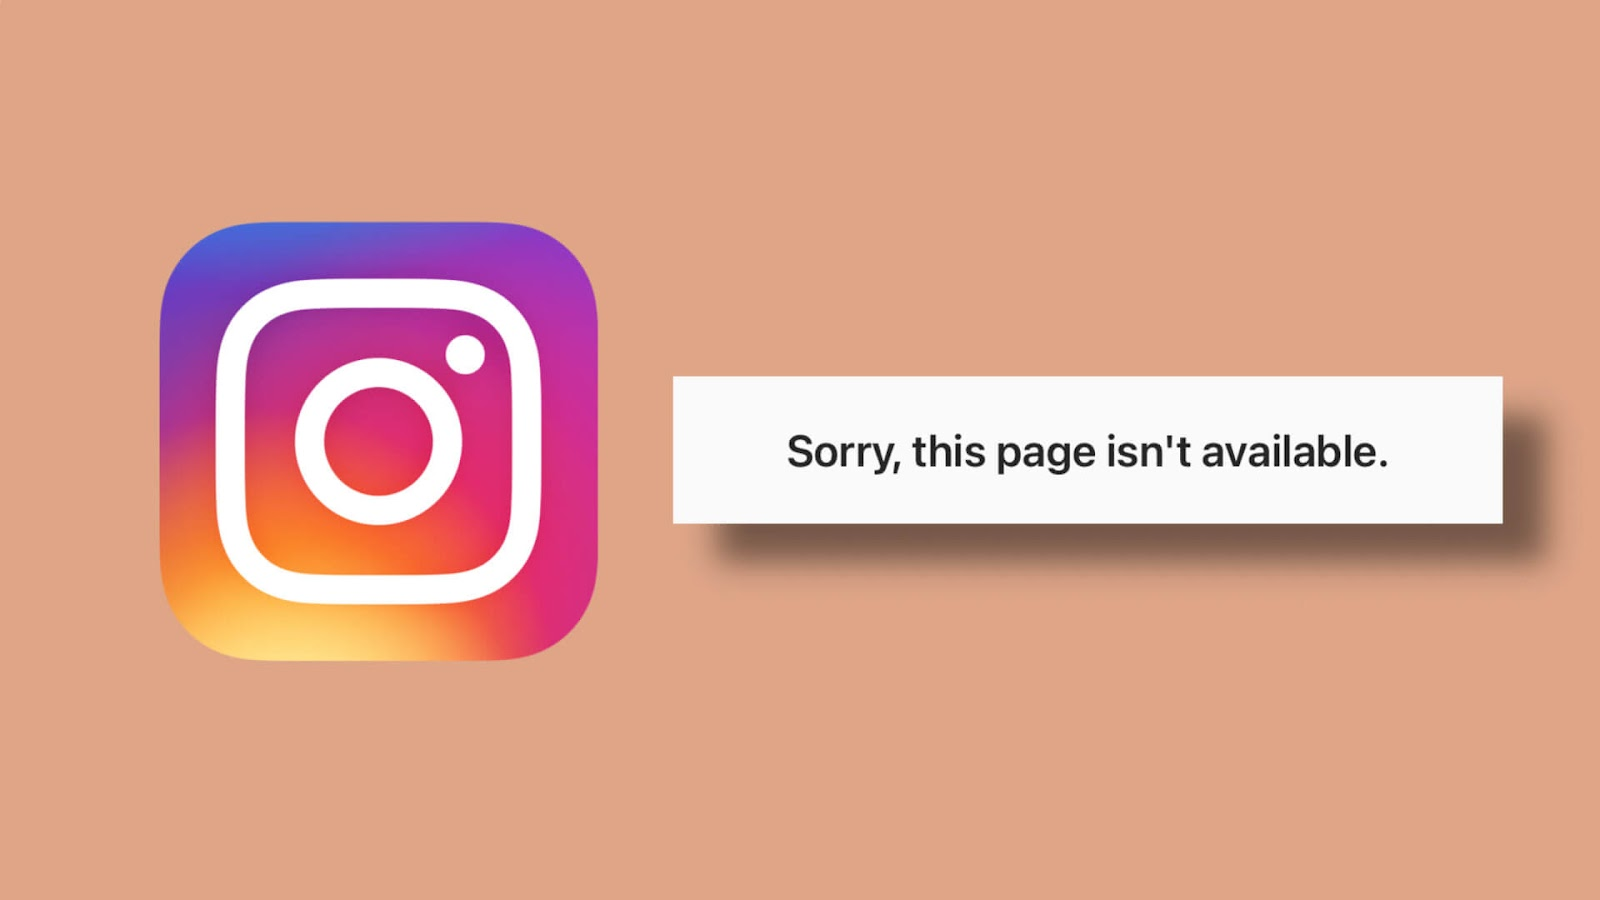 Fix sorry this page isn't available on Instagram